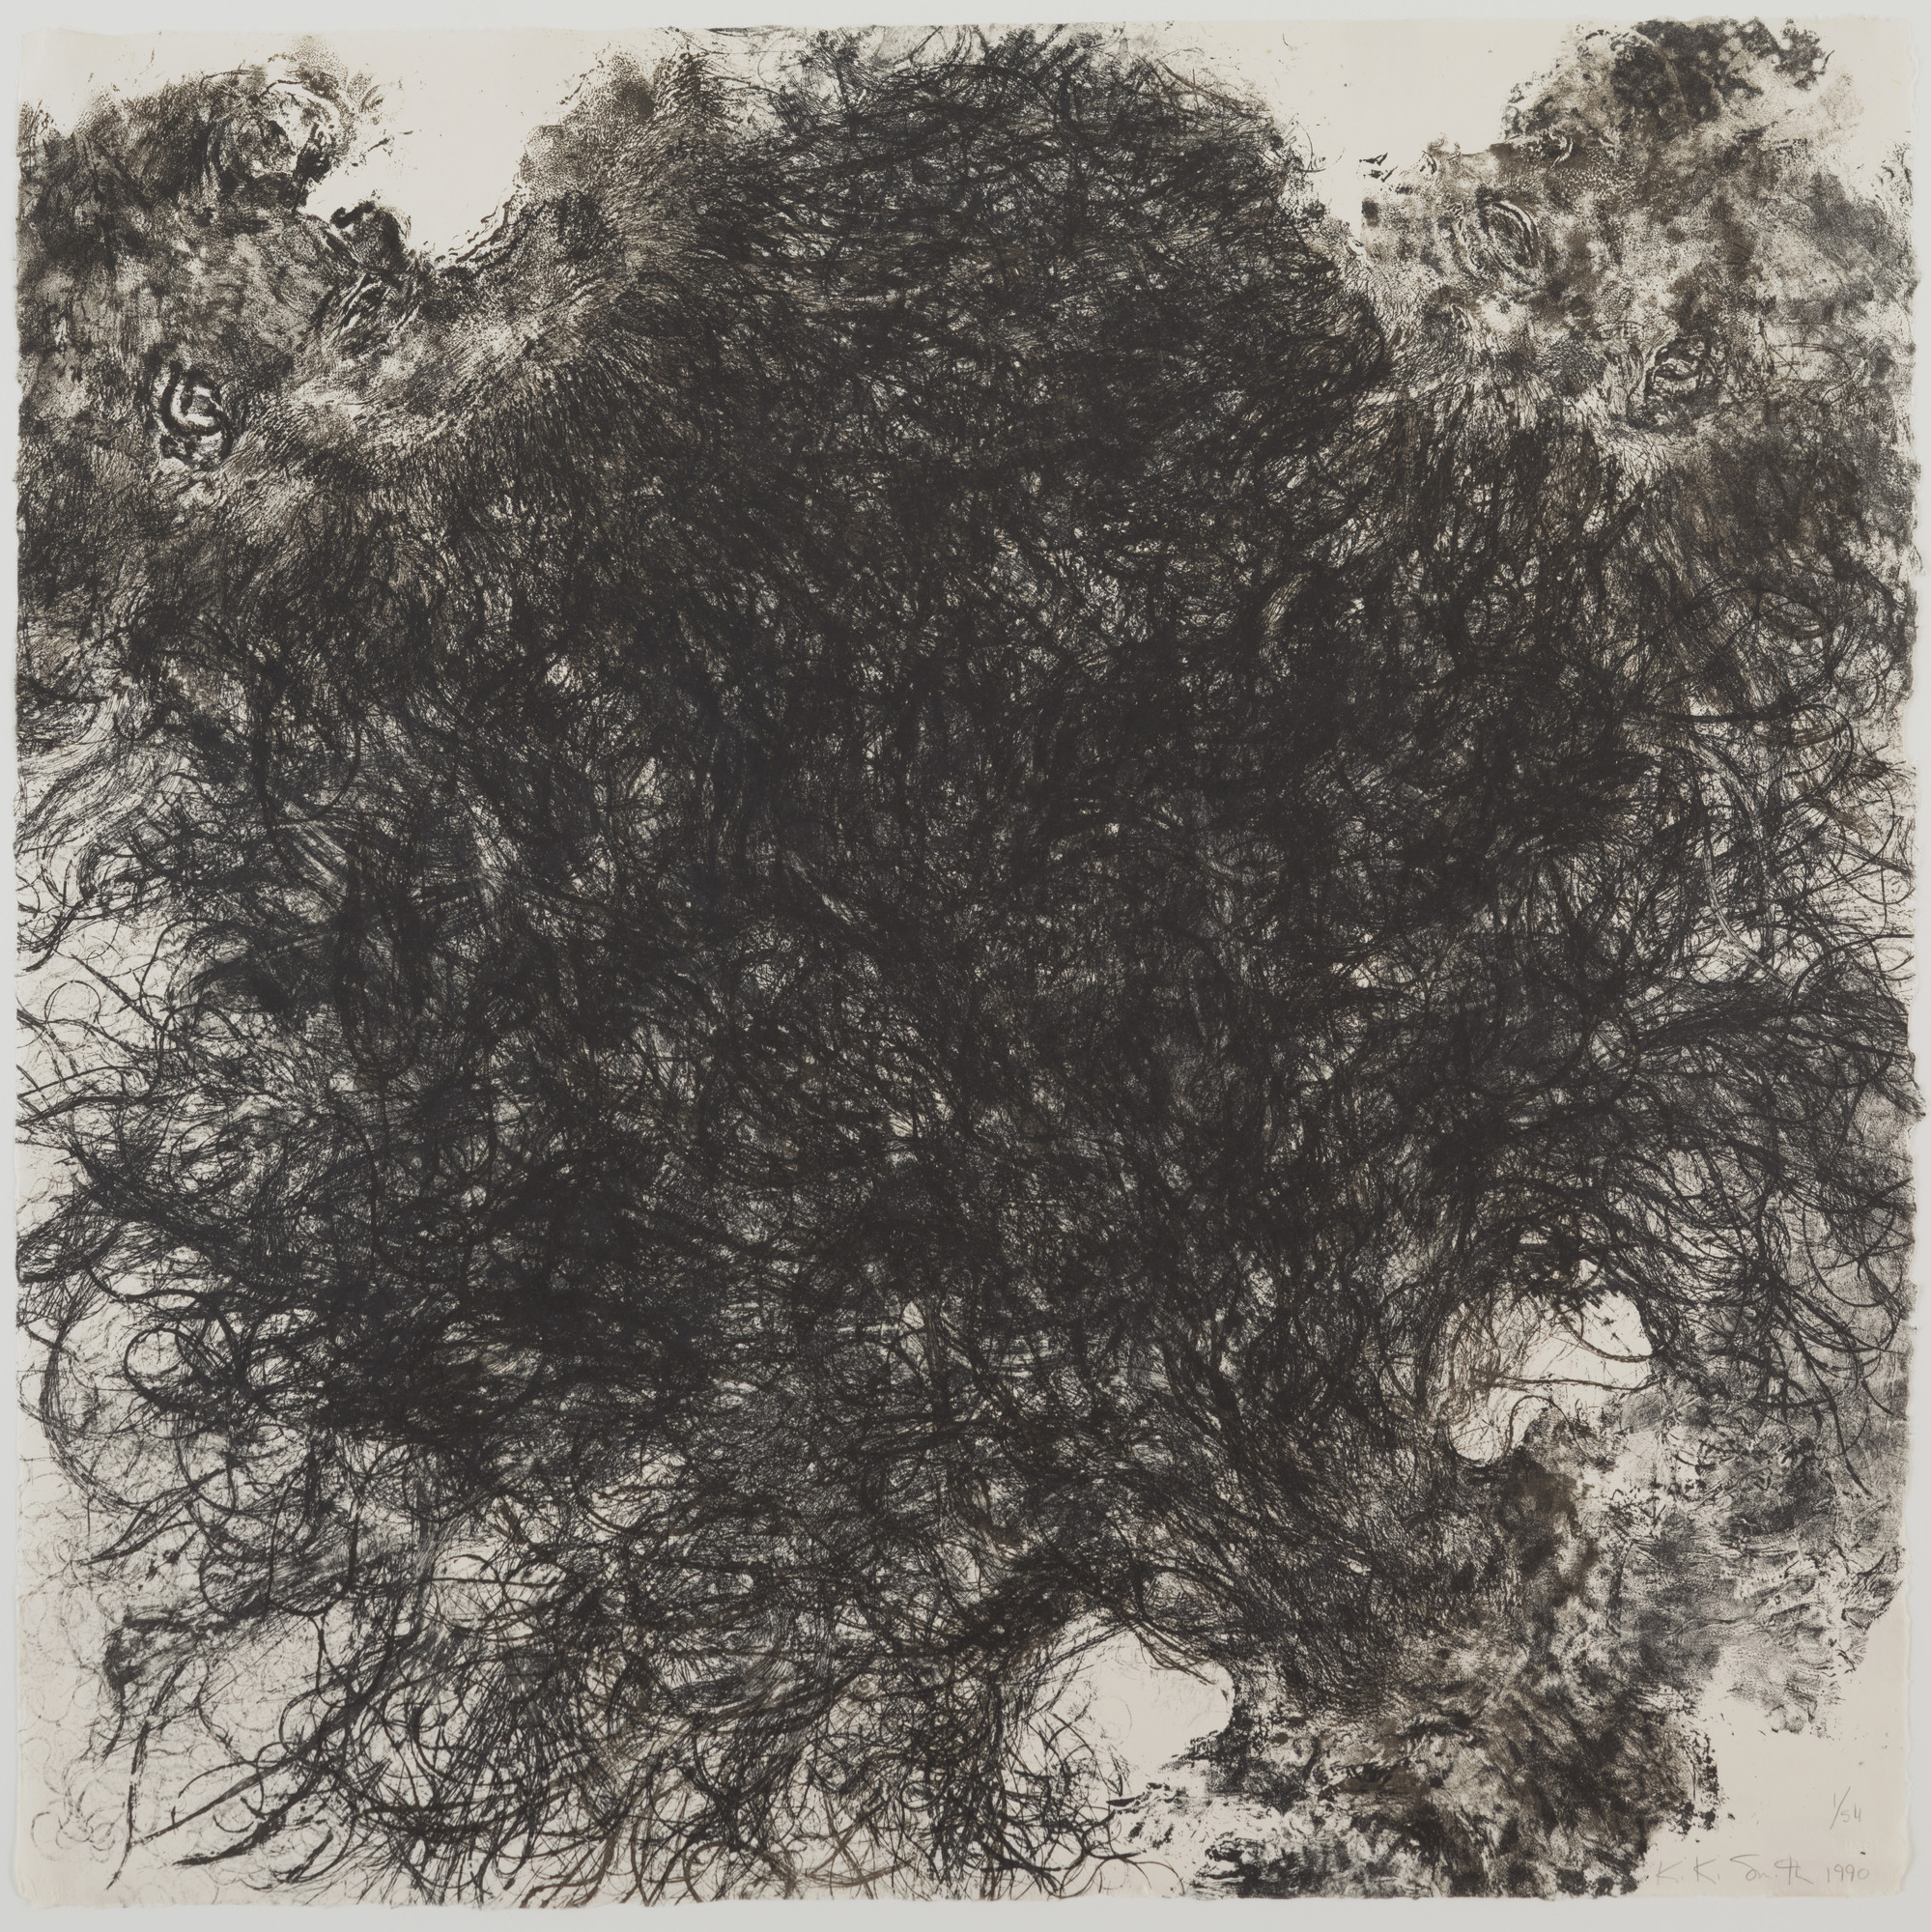 Kiki Smith. Untitled. 1990